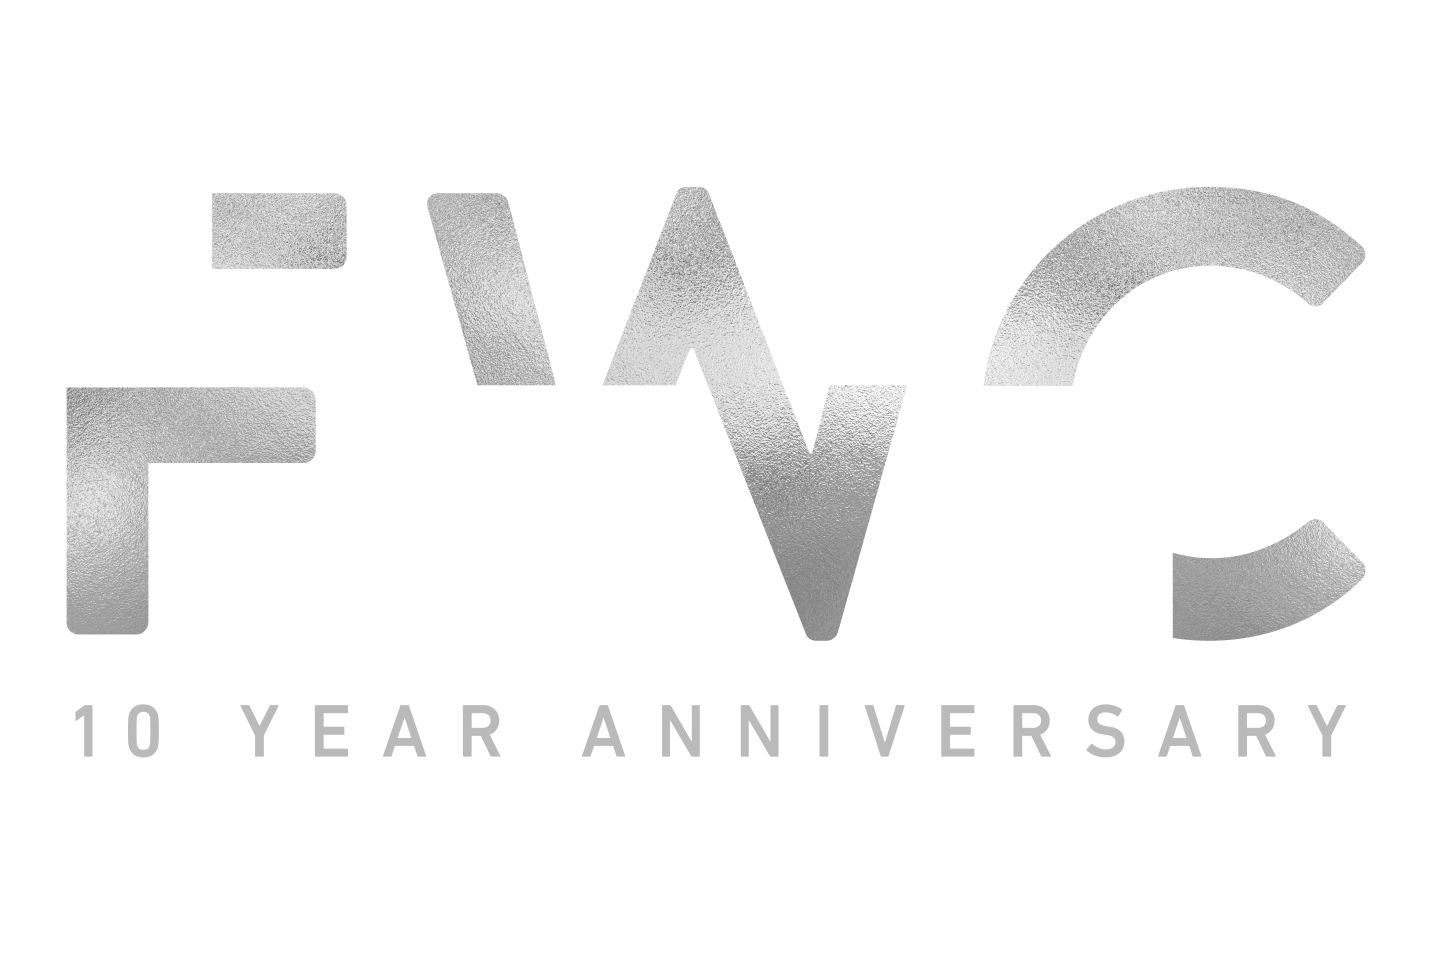 FWC_SILVER_LOGO_GRAY TEXT Low Res